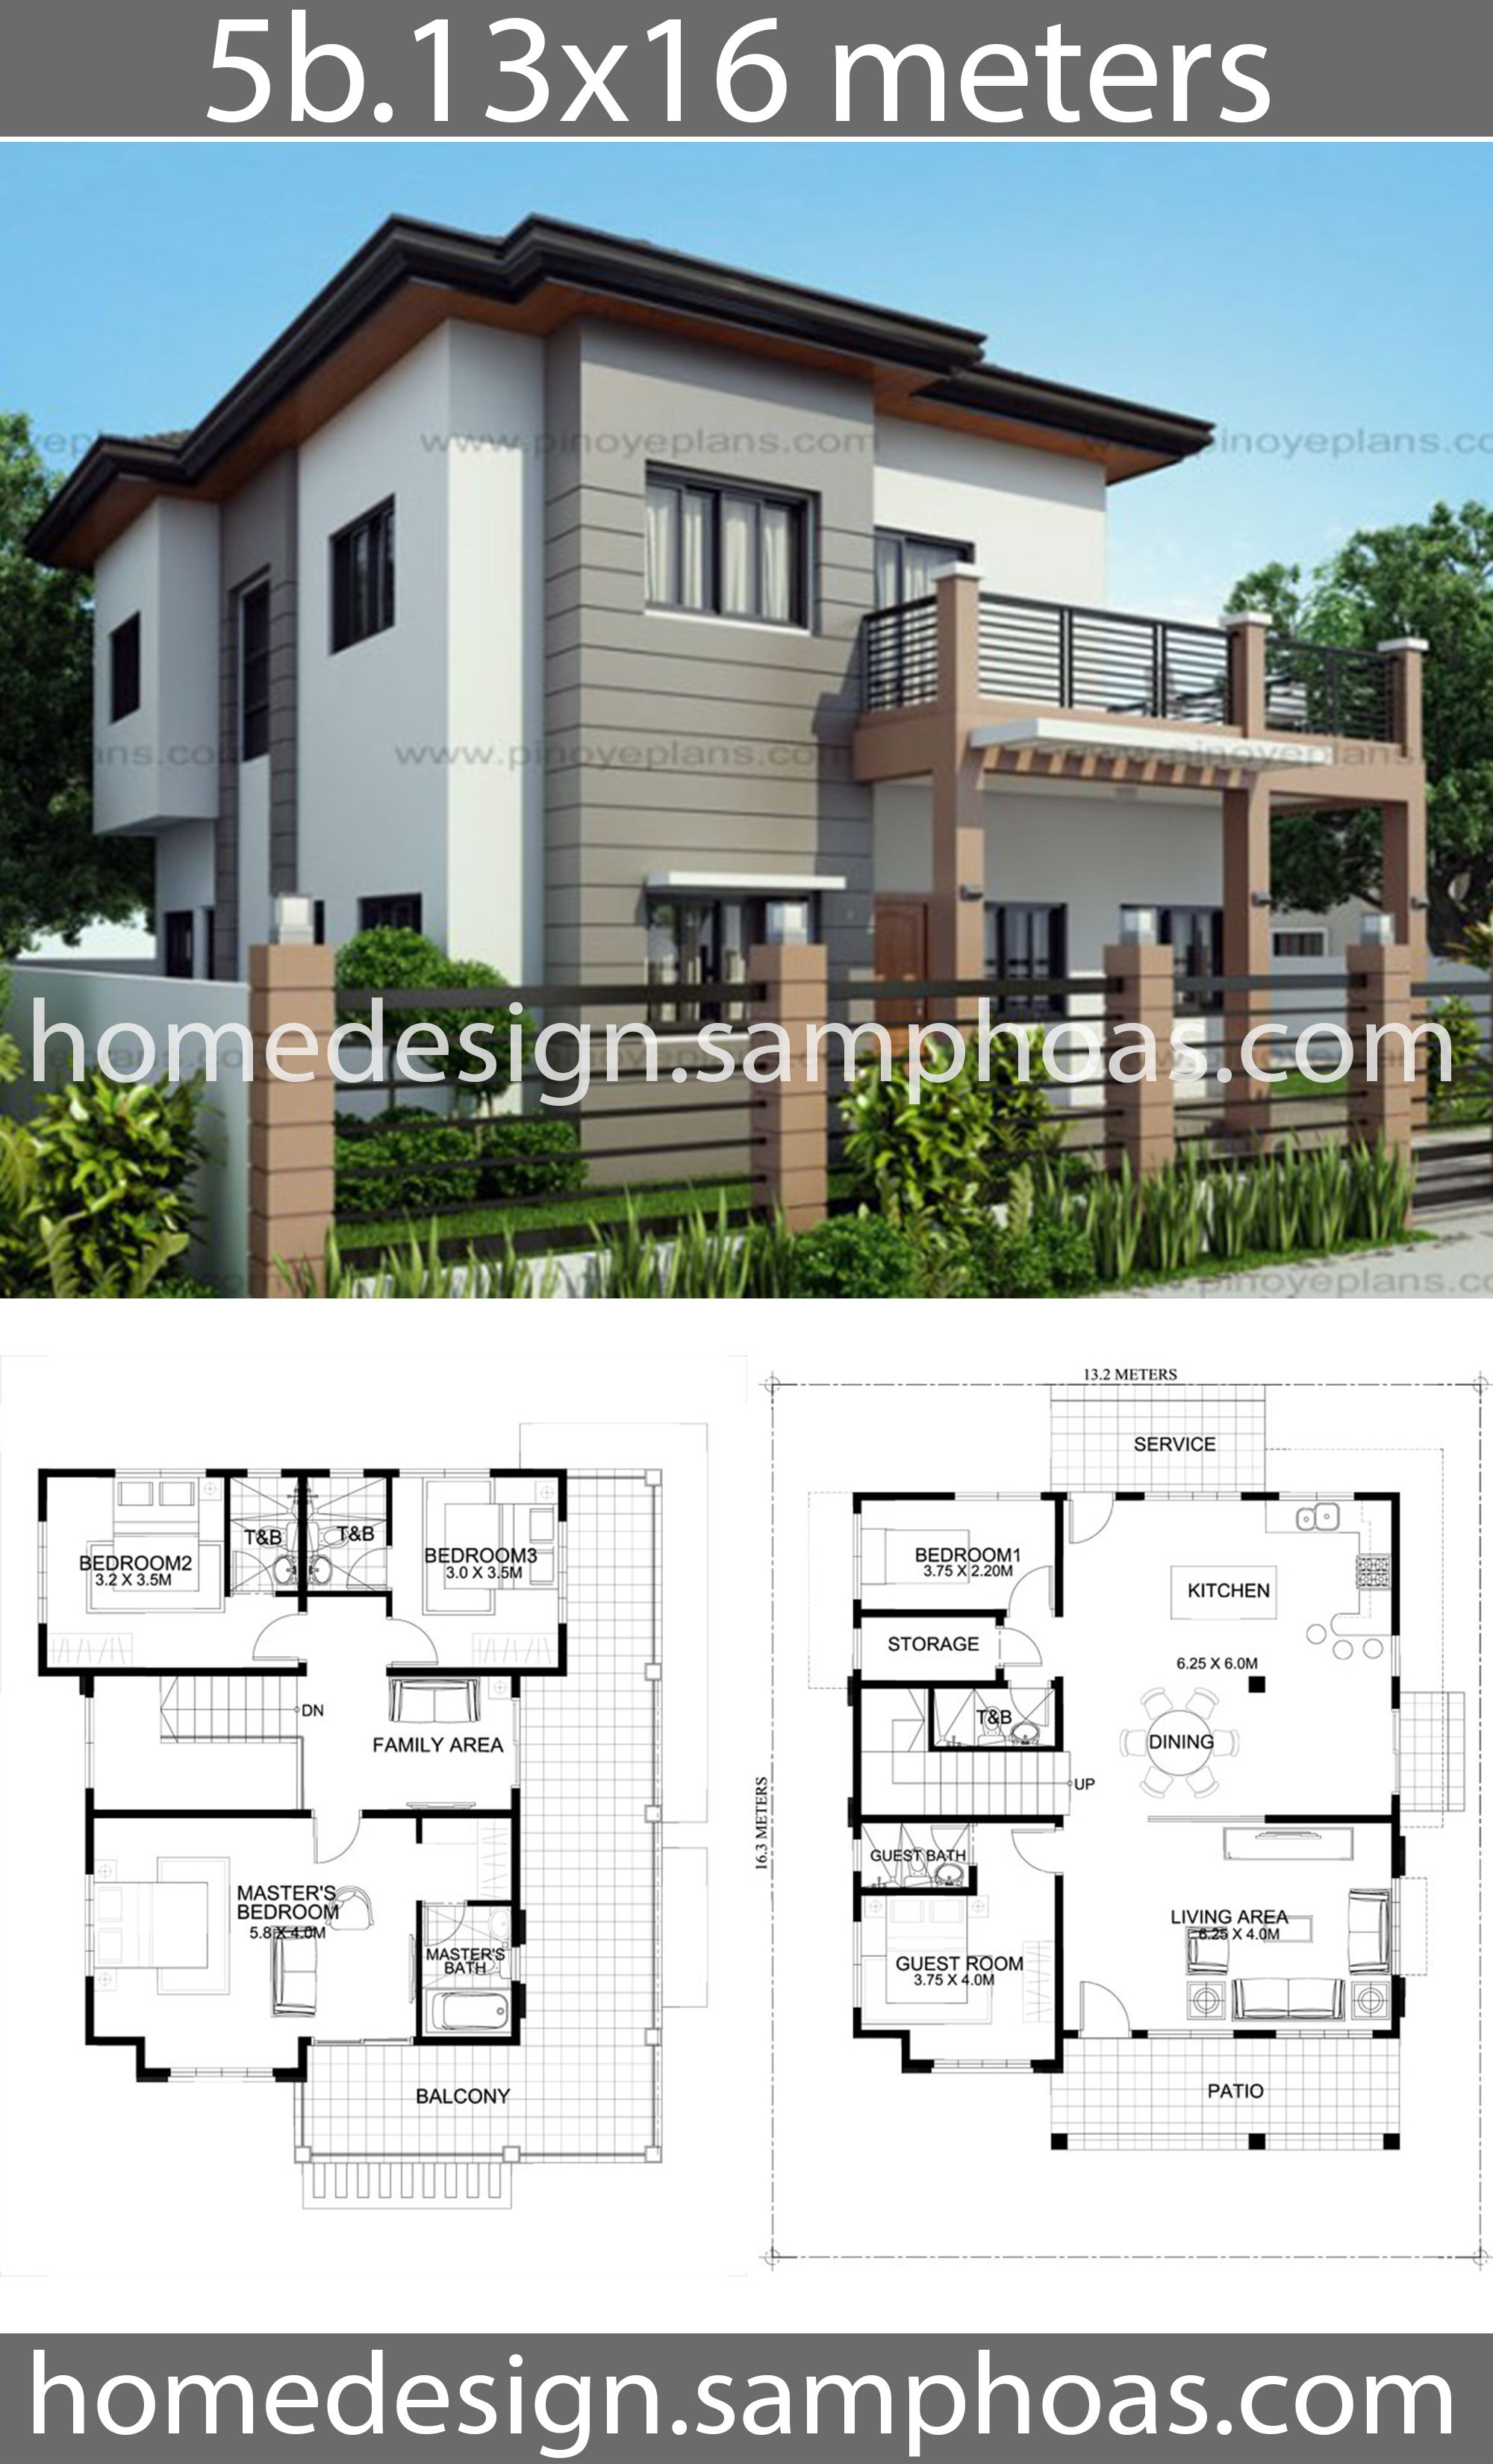 Pin By Zarith On House Plans Idea Beautiful House Plans Home Design Plans Dream House Plans